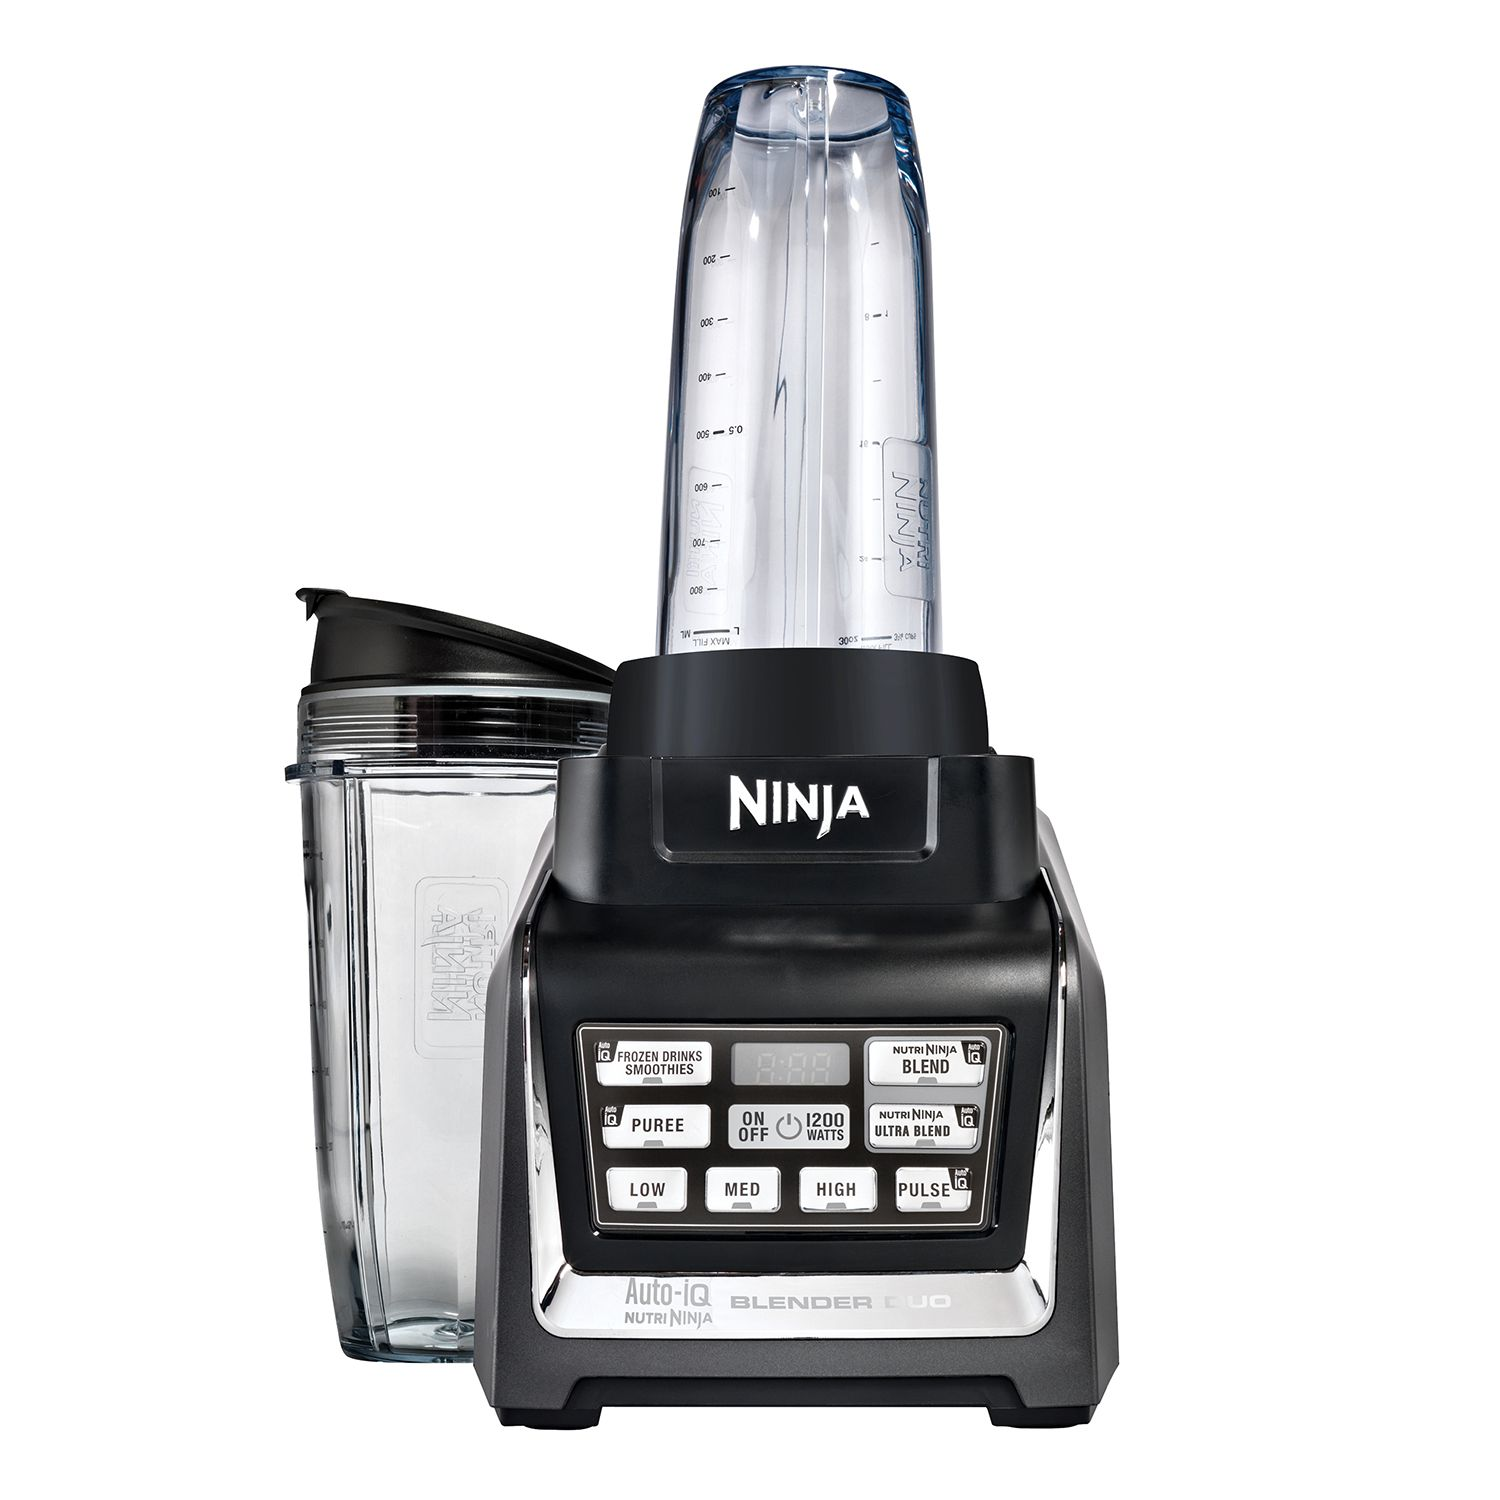 Ninja Blenders & Juicers - Small Appliances, Kitchen & Dining | Kohl\'s